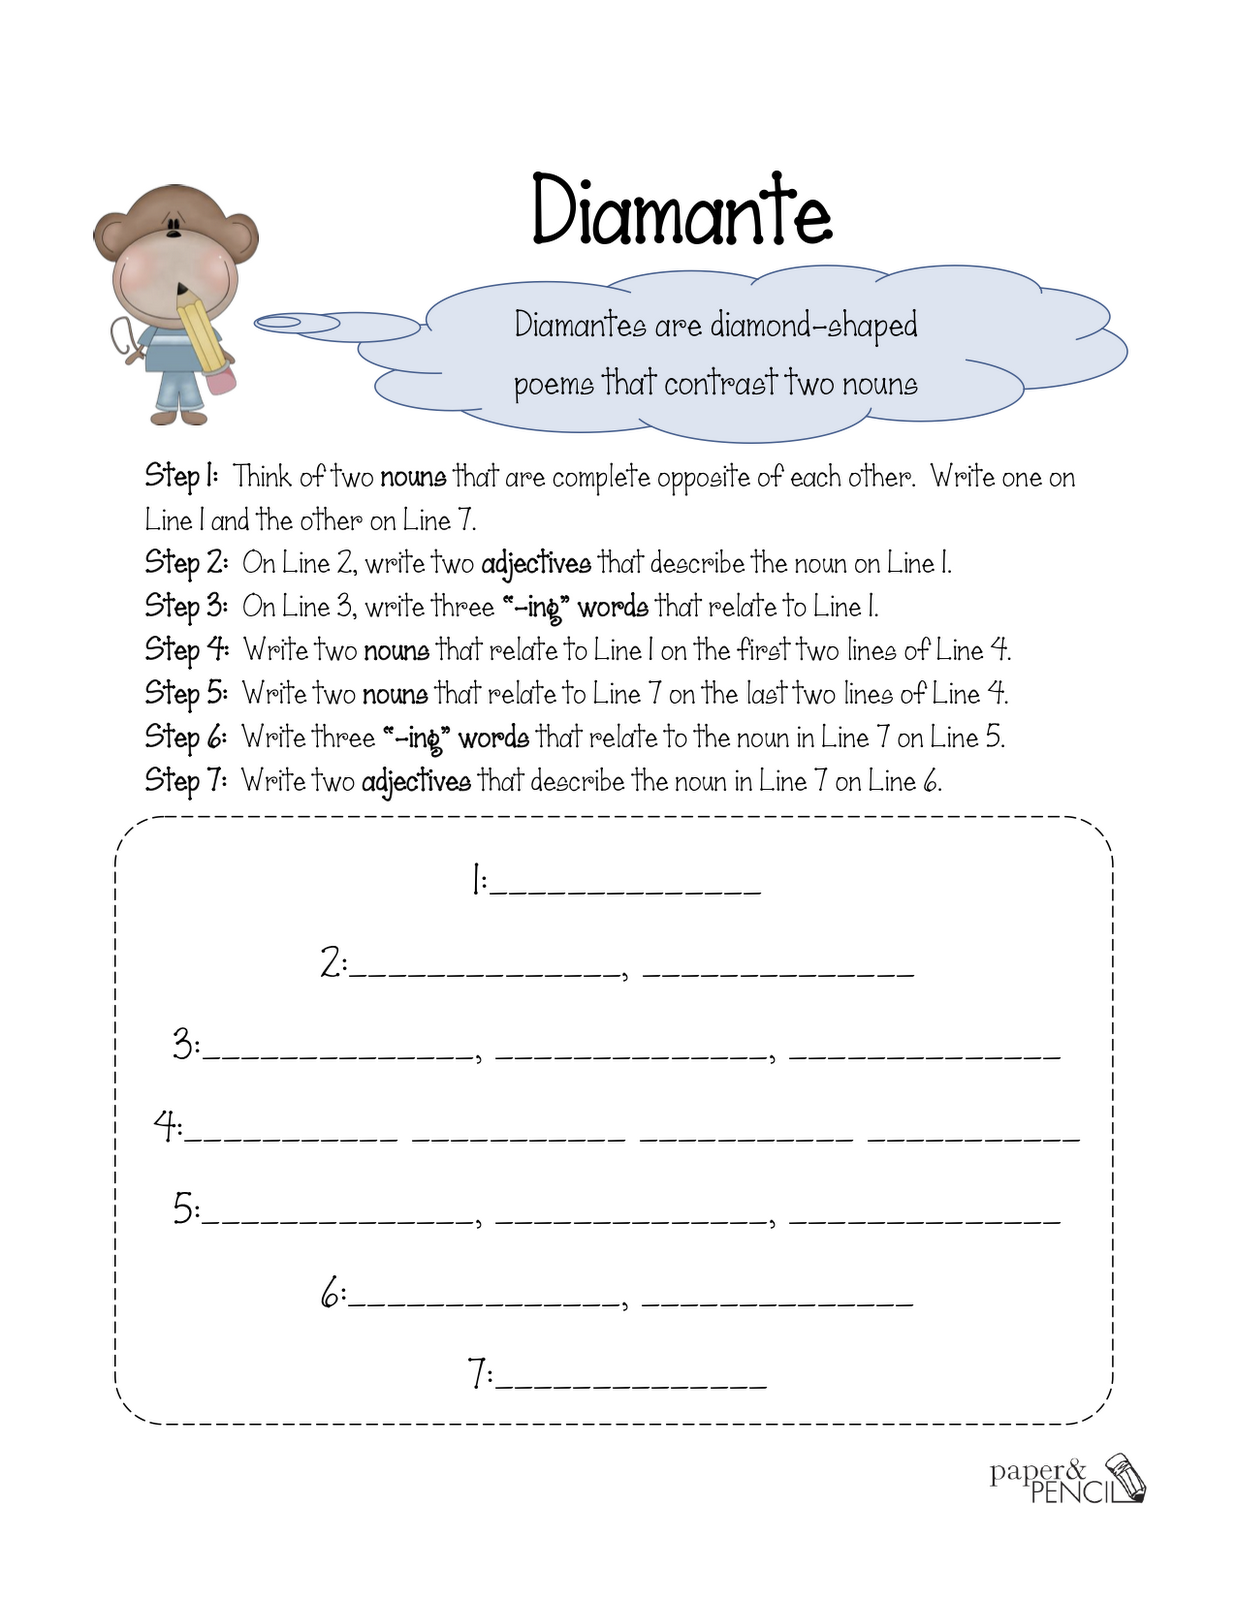 Diamante Poem Printable